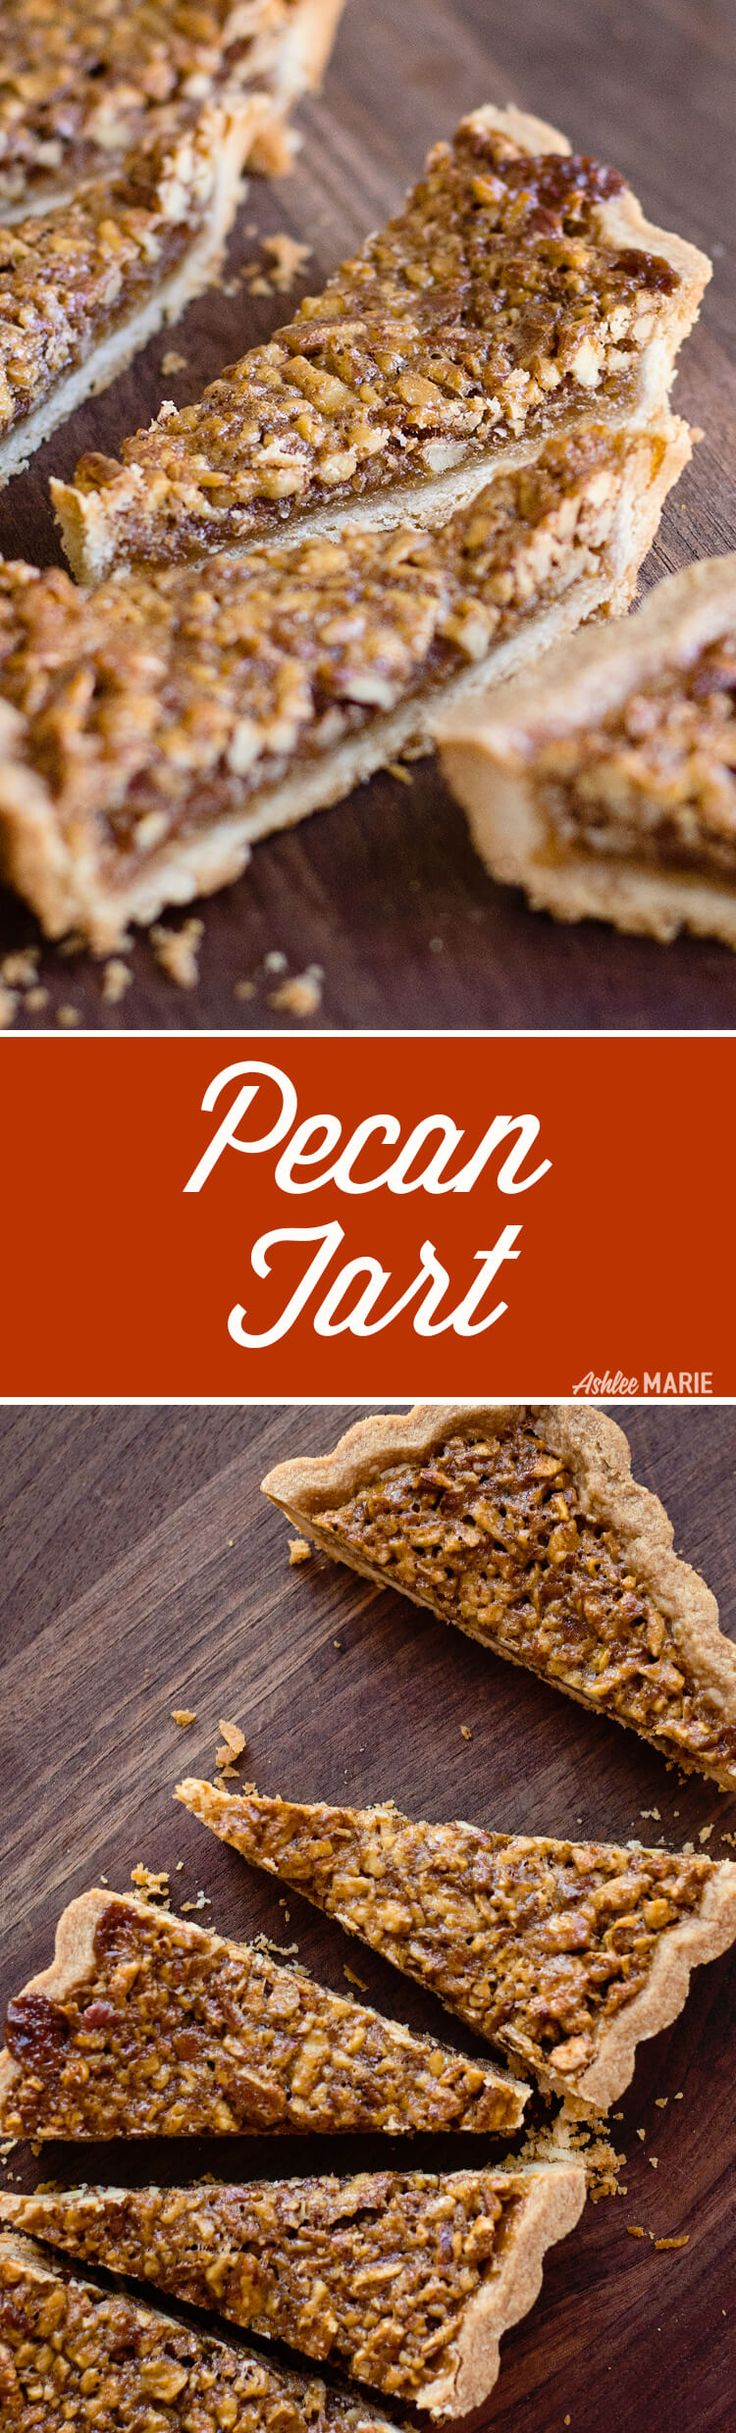 An easy cookie-like crust, with a gooey pecan filling, this Pecan Tart is one of my most-requested desserts. | Ashlee Marie | Winter | Holiday | Dessert | Party Food | Christmas | #holidaydessert #holidaytreats #christmasdessert #holidayrecipes